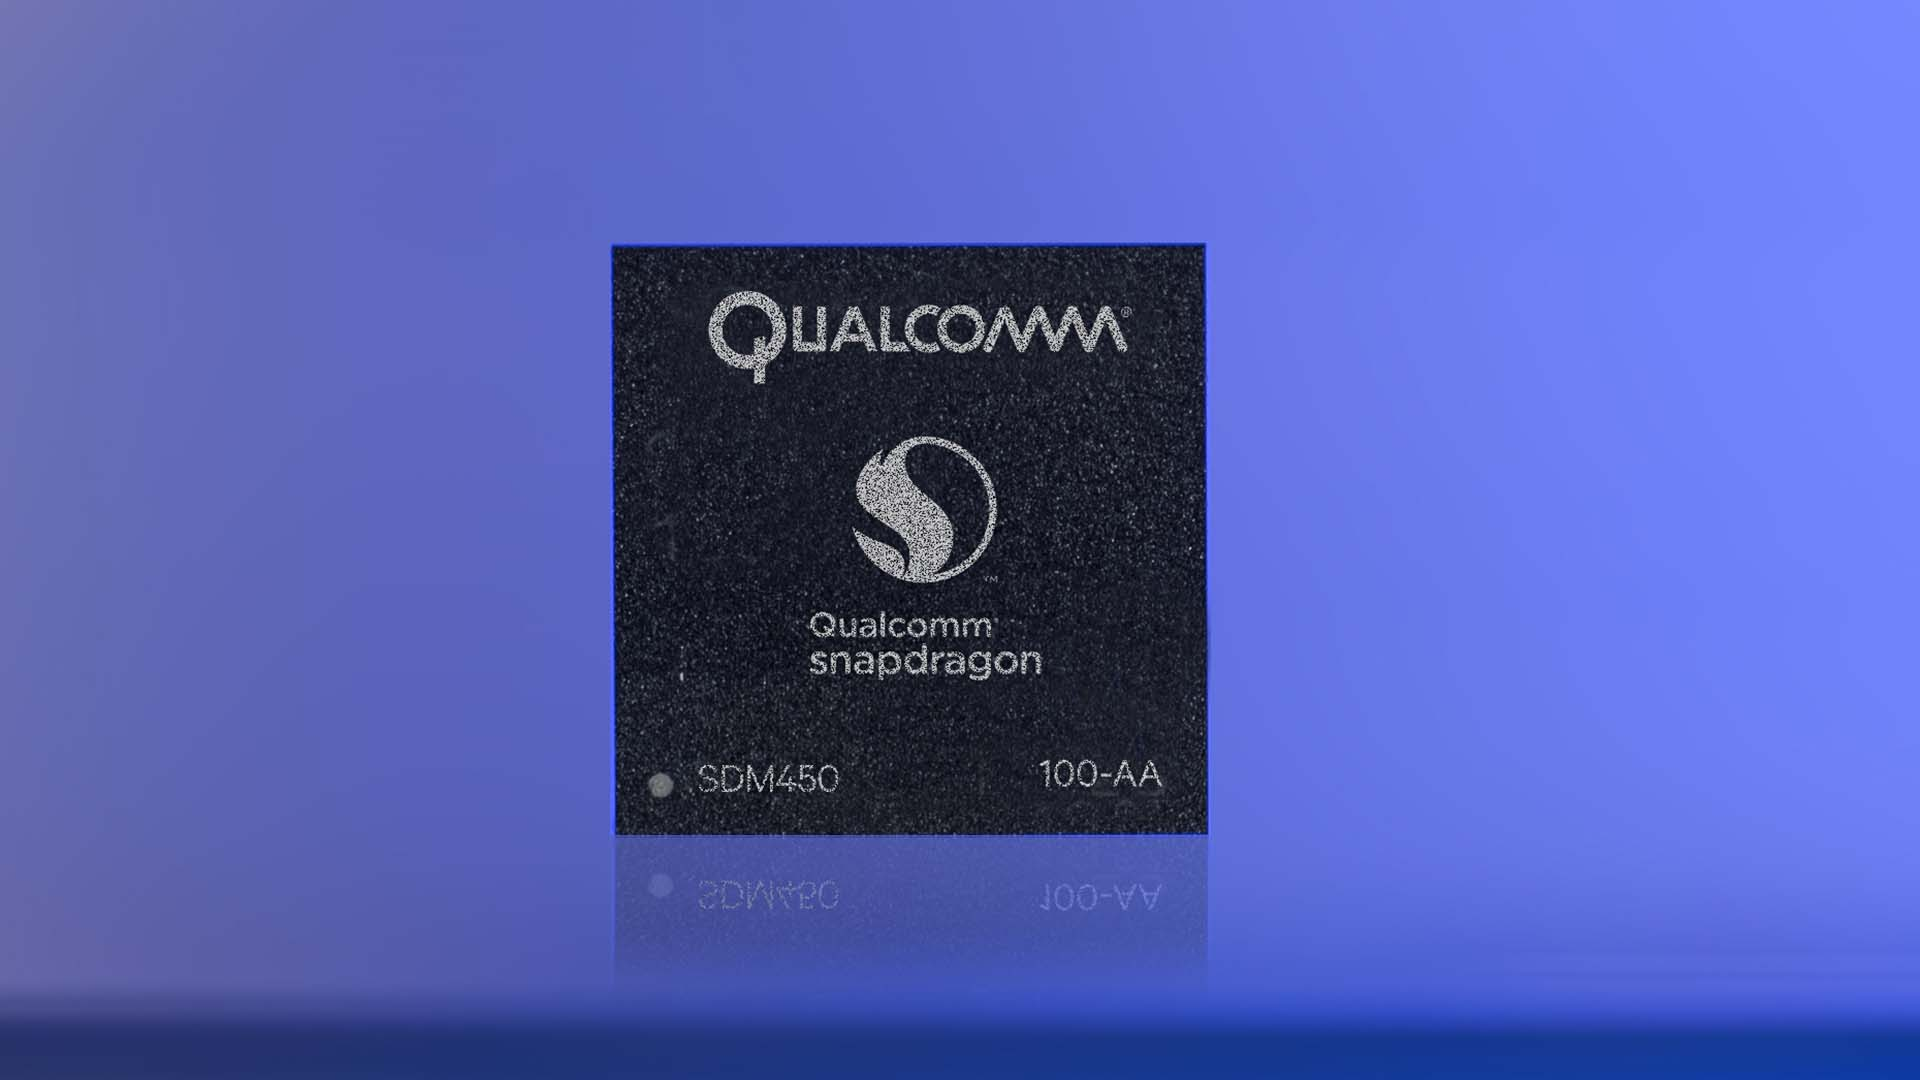 導入 14nm 製程,Qualcomm Snapdragon 450 第三季送樣